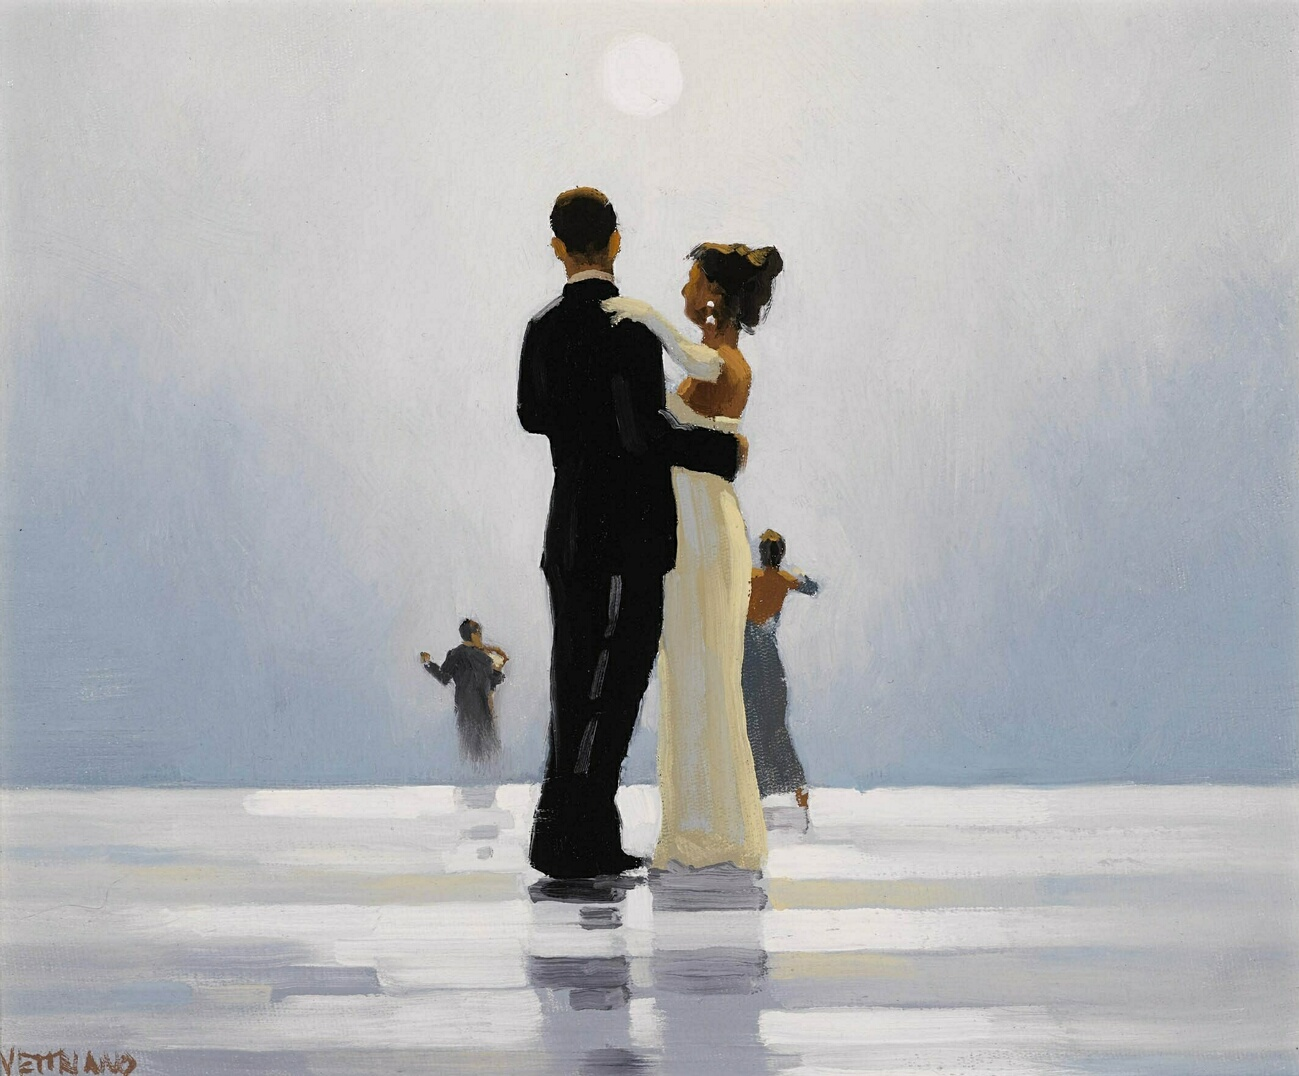 http://1.bp.blogspot.com/_pHiiIBgXVJE/S9ZI0T67ccI/AAAAAAAABQw/_fF1Dmt2DUM/s1600/vettriano-dance-me-to-the-end-of-love1.jpg